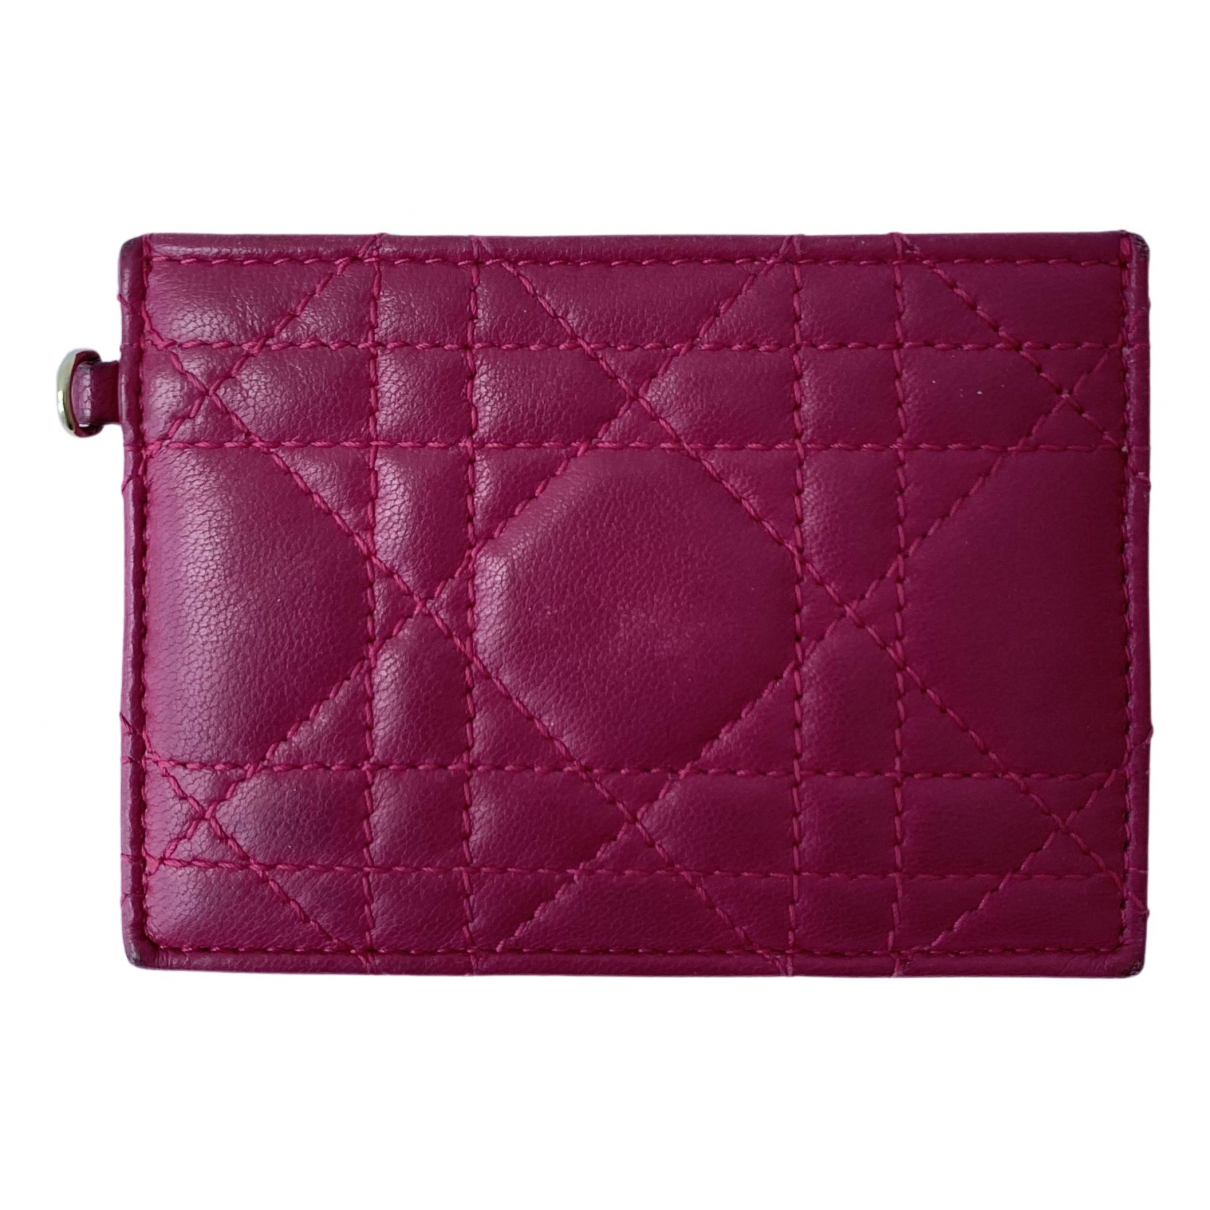 Dior N Pink Leather Purses, wallet & cases for Women N